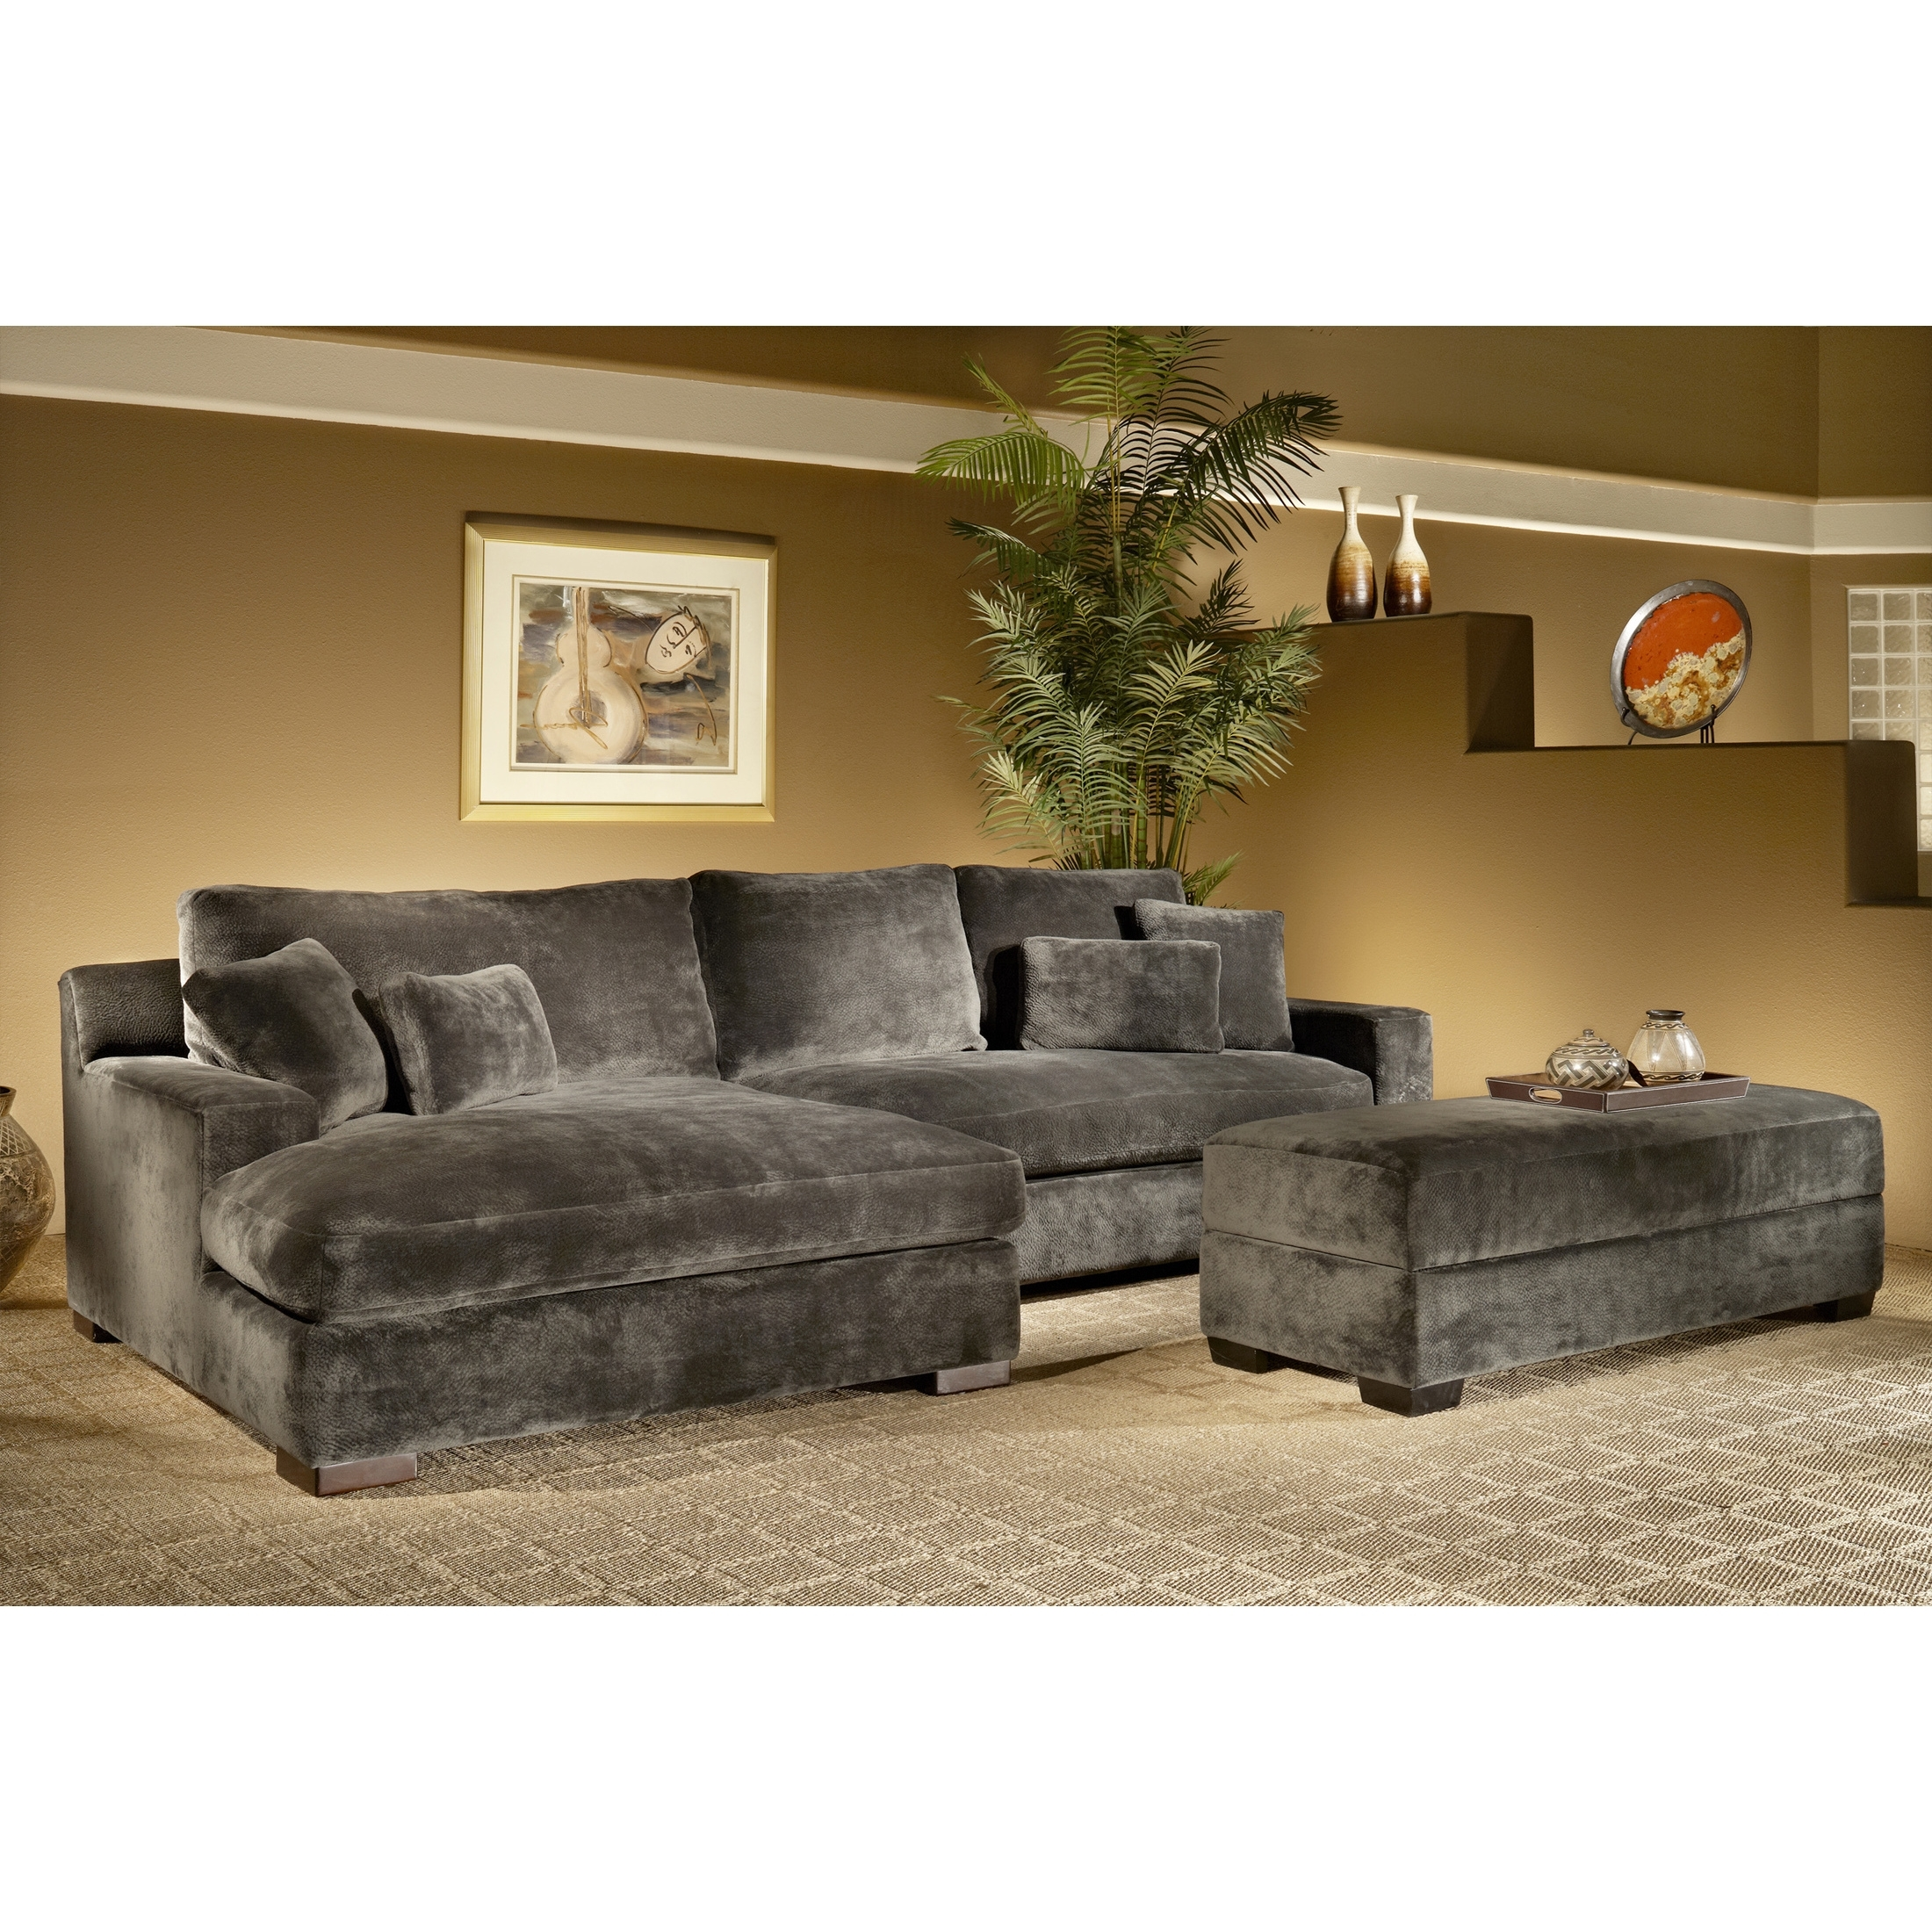 Newest The Casual Contemporary Doris Two Piece Chaise Sectional Is With Ventura County Sectional Sofas (Gallery 20 of 20)